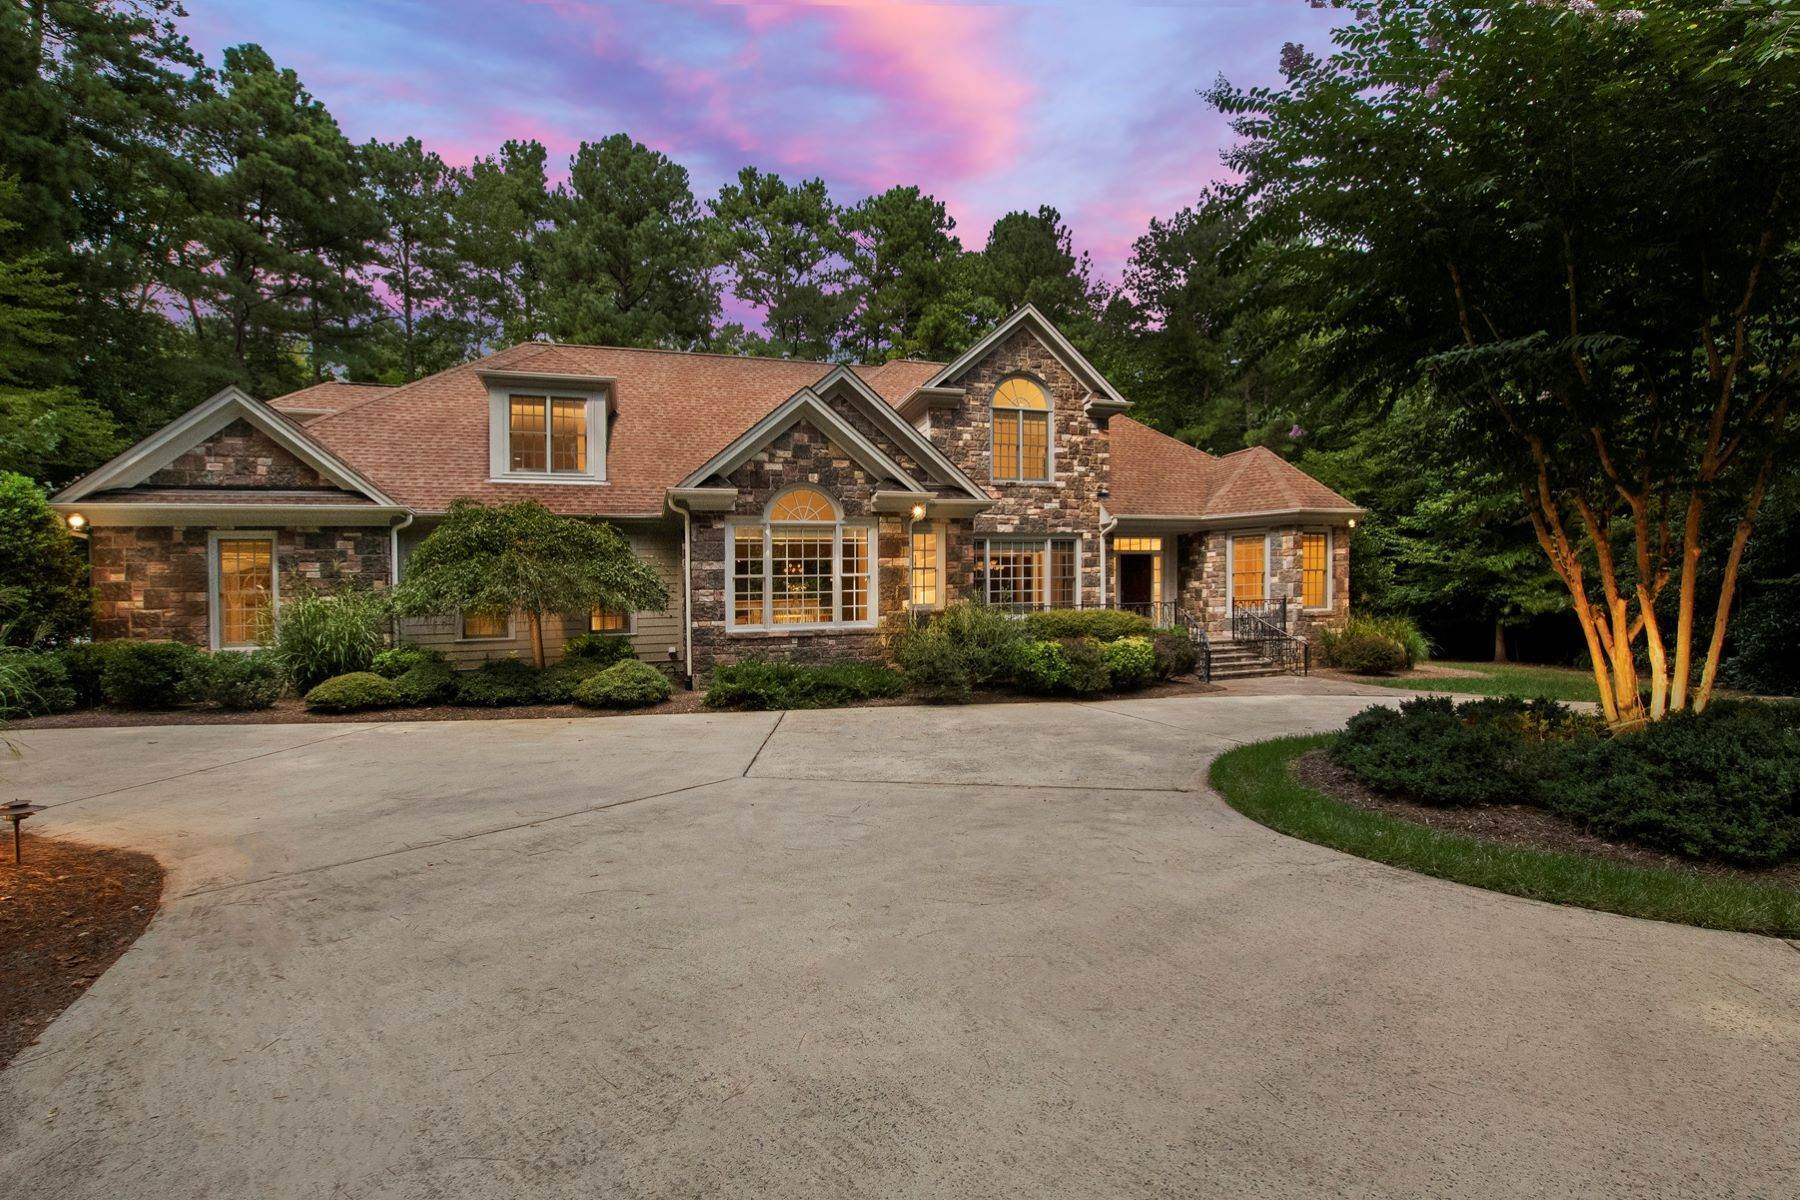 Single Family Homes for Sale at Transitional 2+Acre Move-In Ready Home 2704 Forest Creek Road Chapel Hill, North Carolina 27514 United States